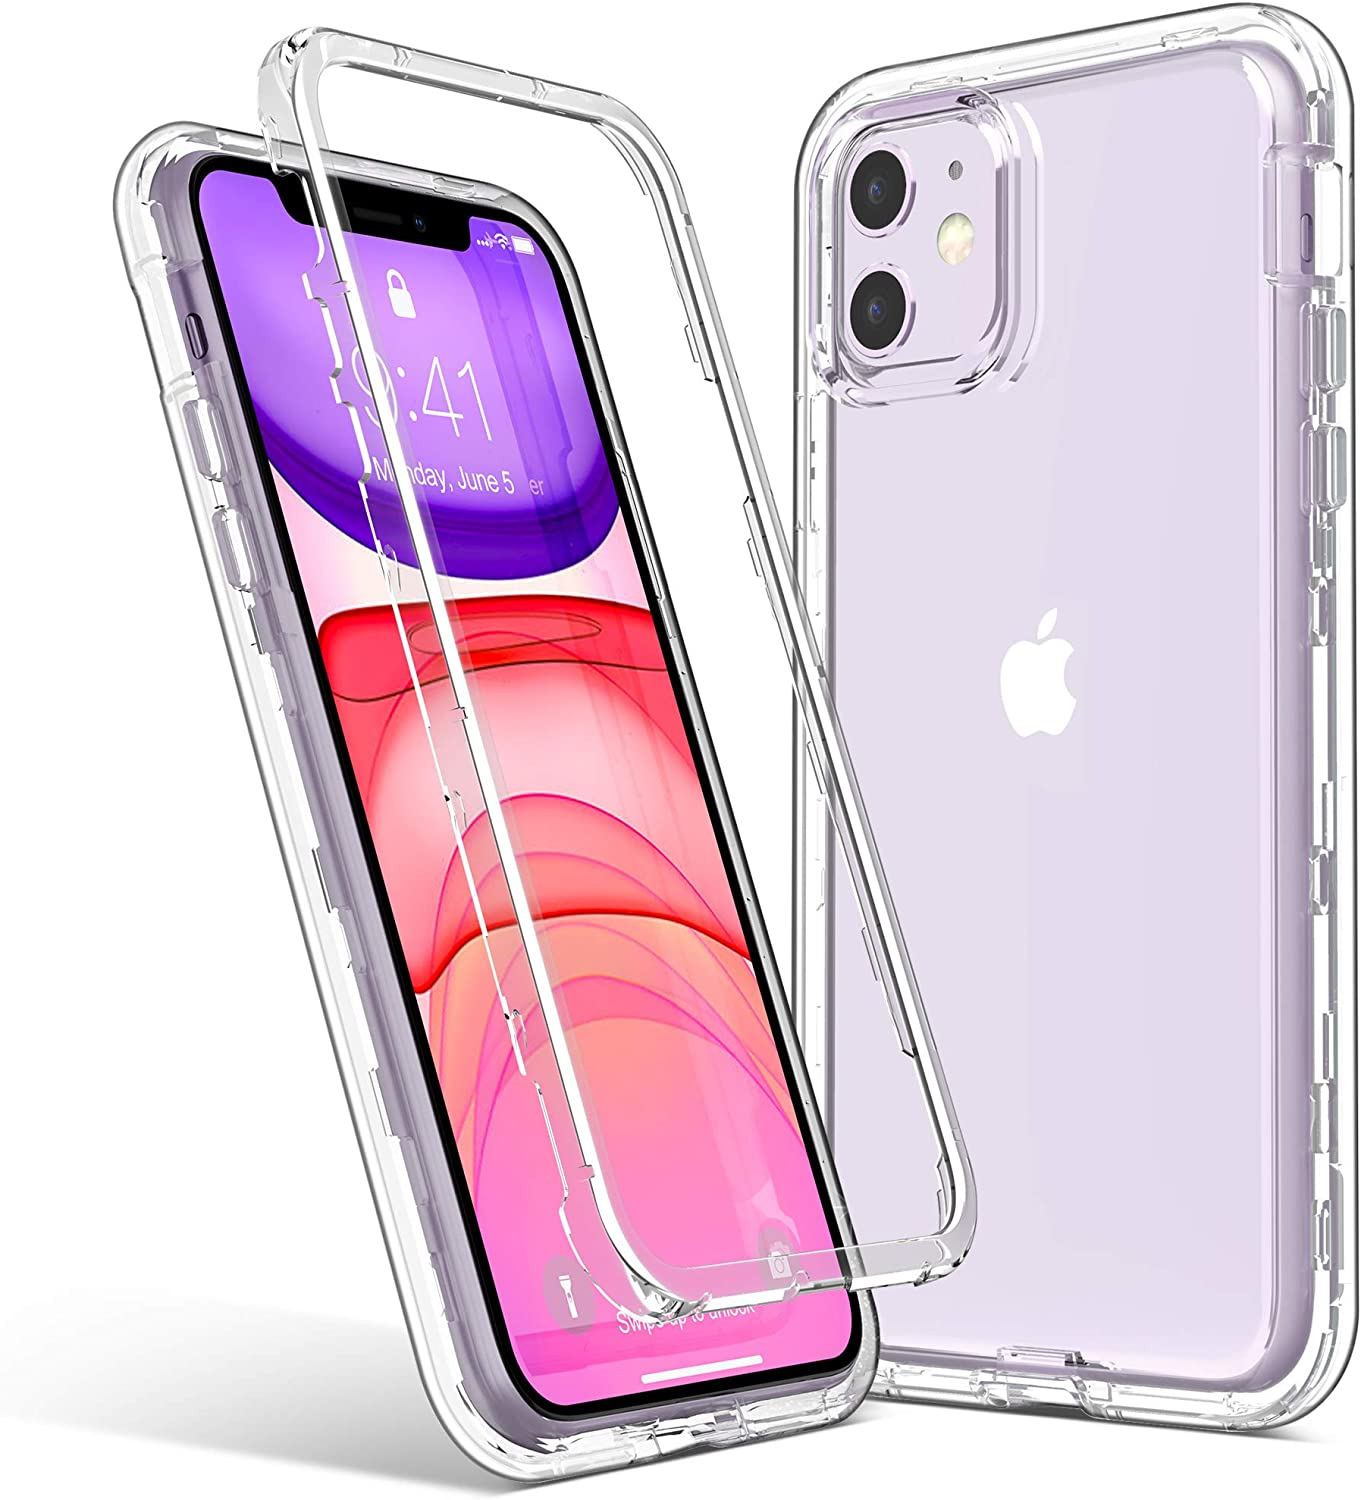 ULAK iPhone 11 Case, Heavy Duty Shockproof Rugged Protection Case Soft TPU Bumper Phone Cover Designed for Apple iPhone 11 6.1 inch (2019), Clear